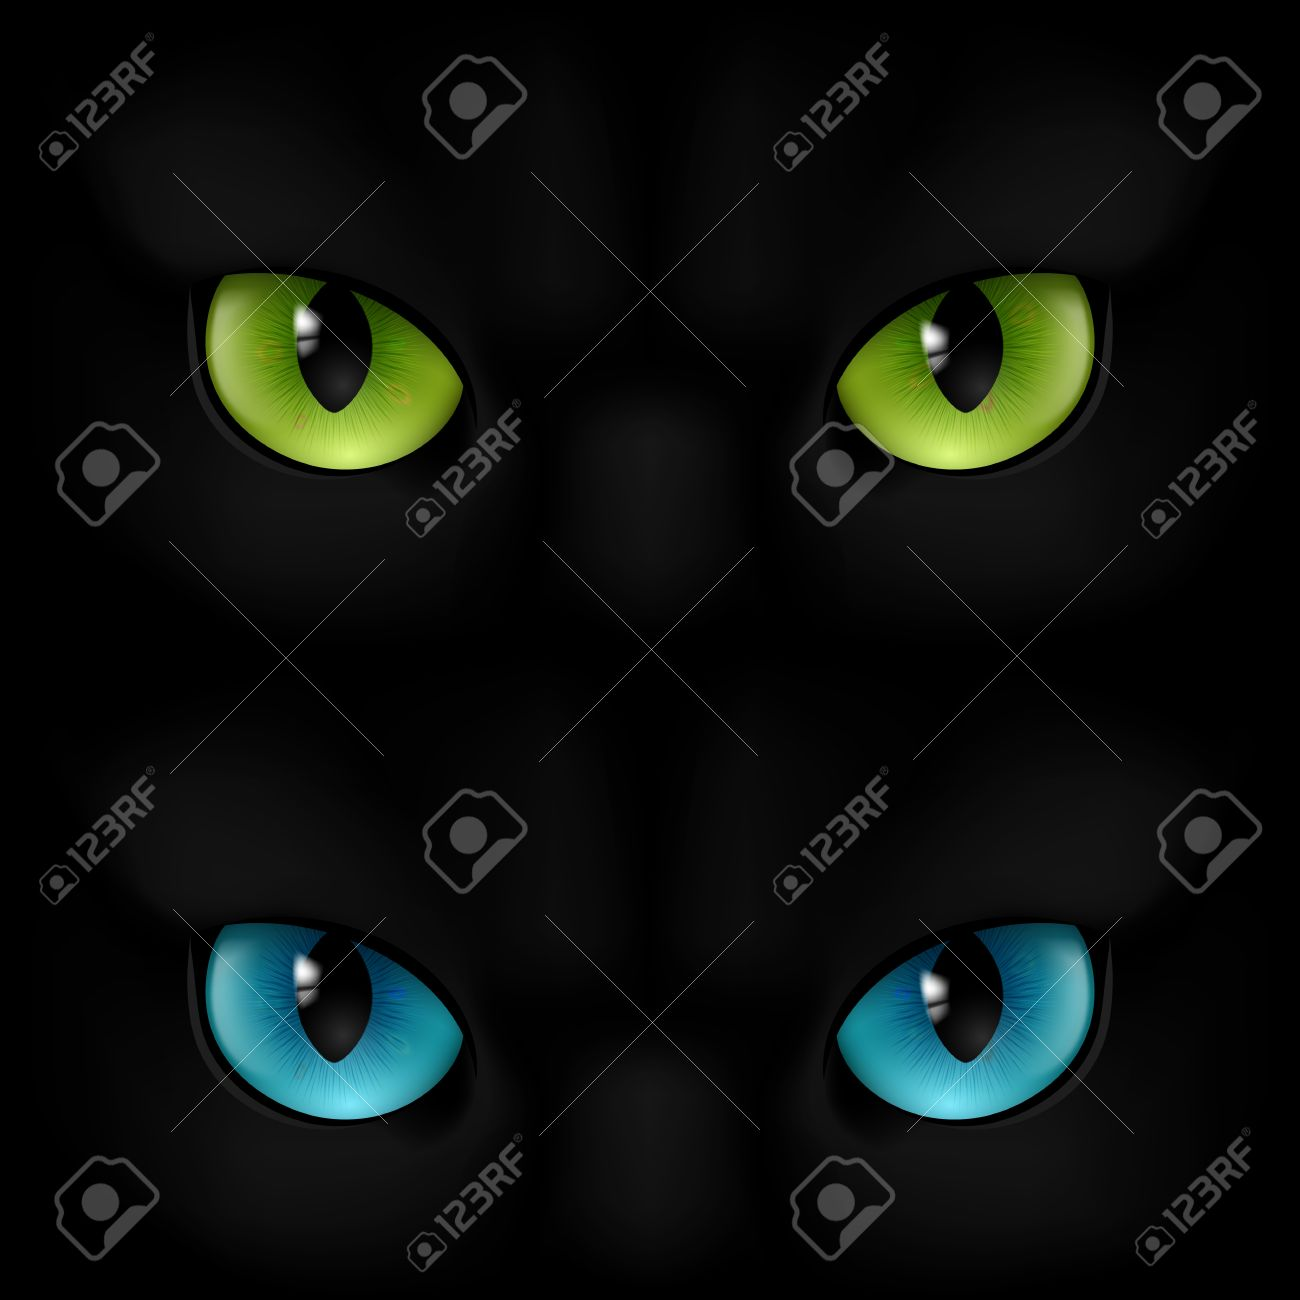 scary eyes scary eyes: Green and blue cats eyes on a black background